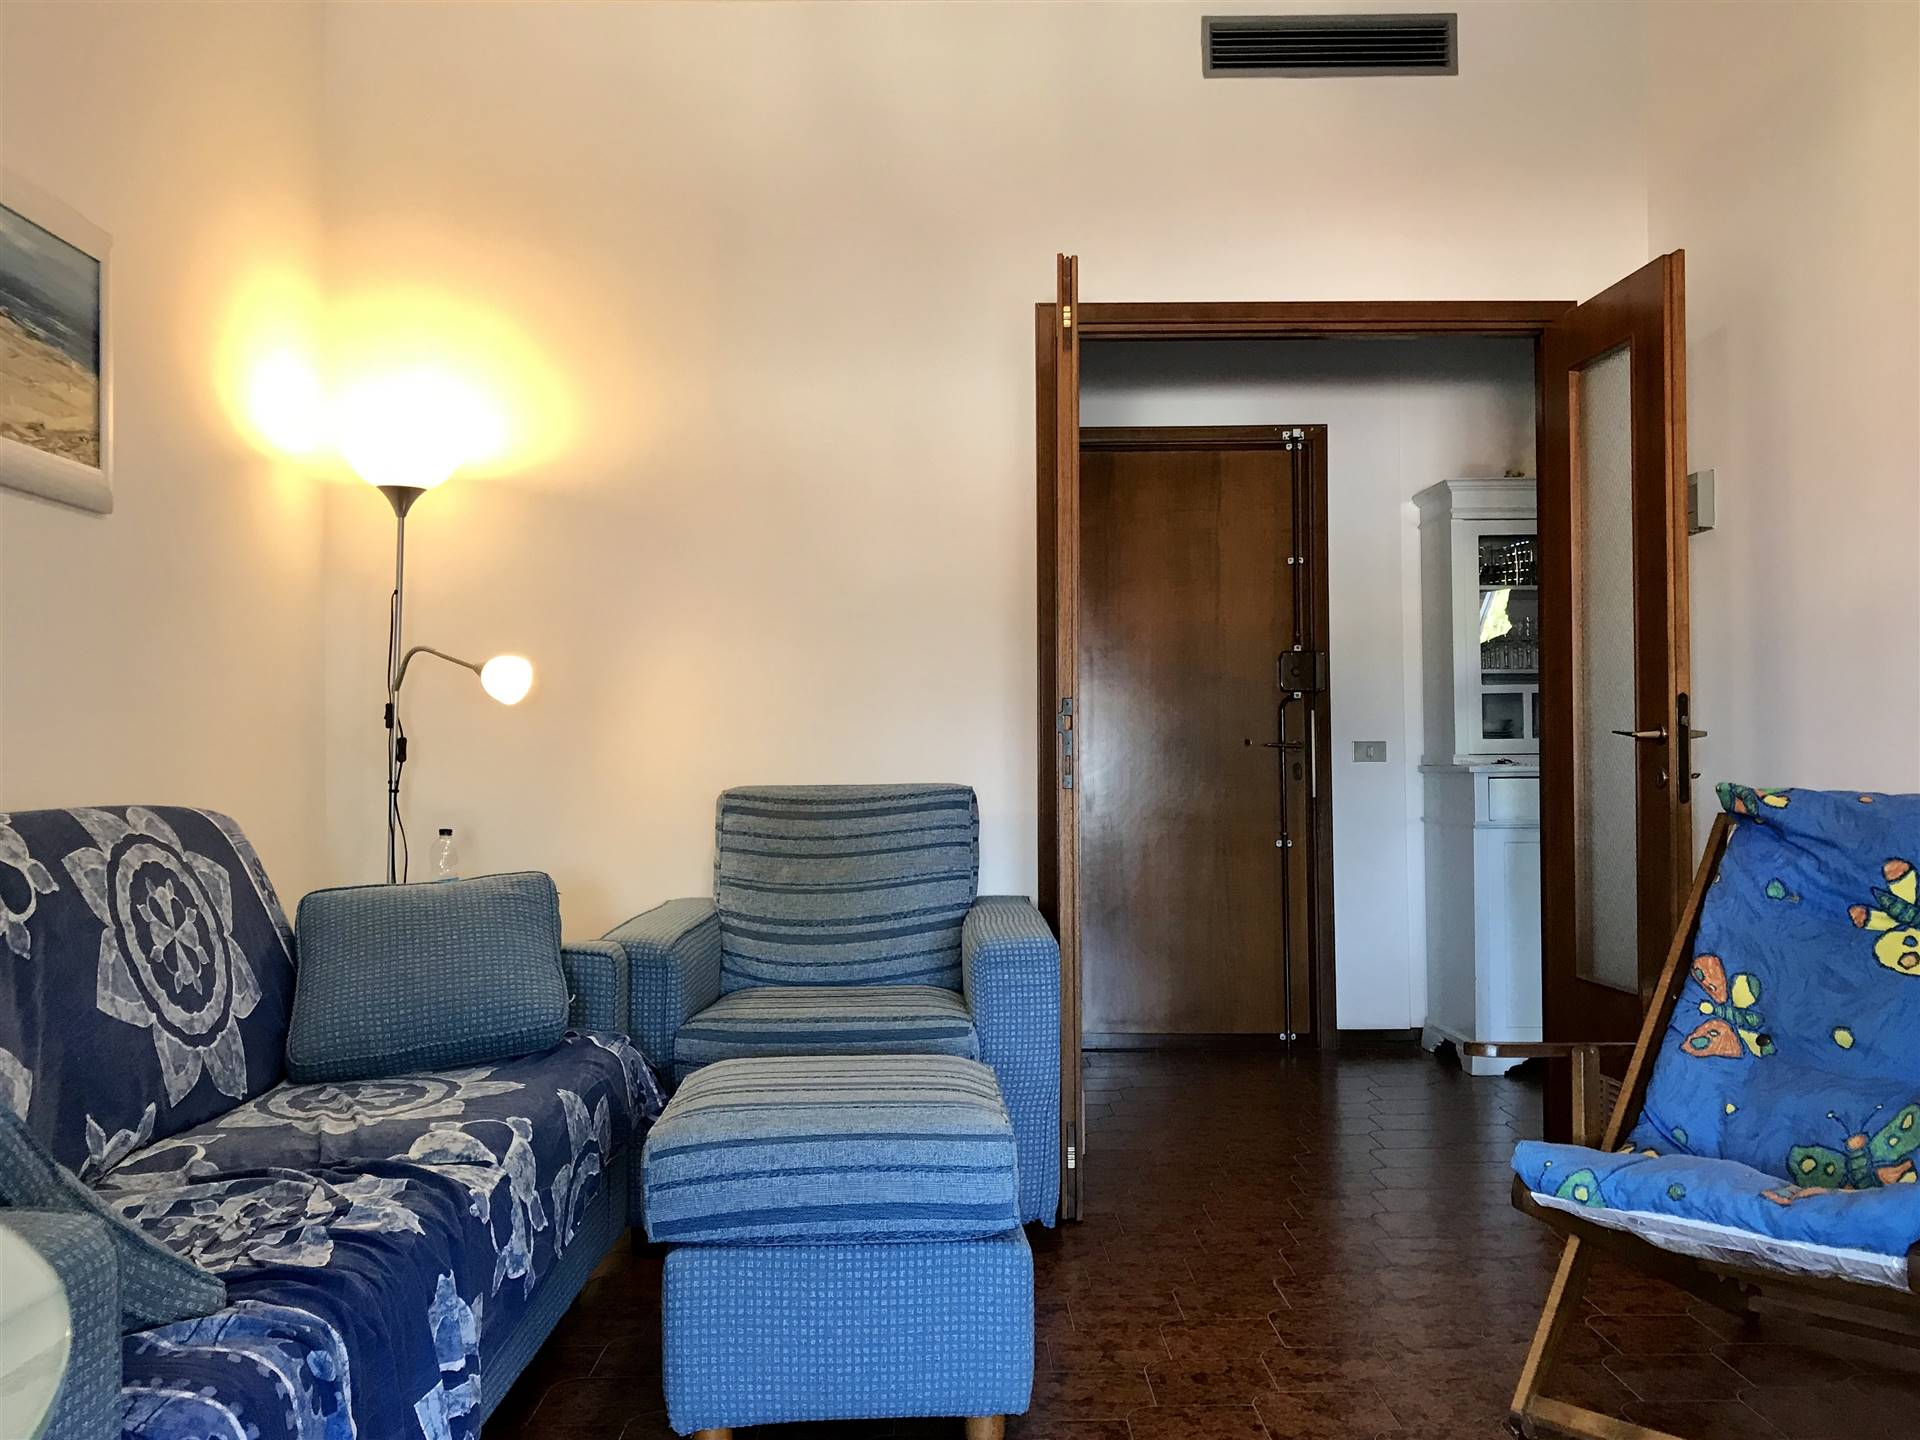 DARSENA, VIAREGGIO, Apartment for sale of 78 Sq. mt., Good condition, Heating Individual heating system, composed by: 4 Rooms, Separate kitchen, , 2 Bedrooms, 1 Bathroom, Elevator, Price: € 178,000